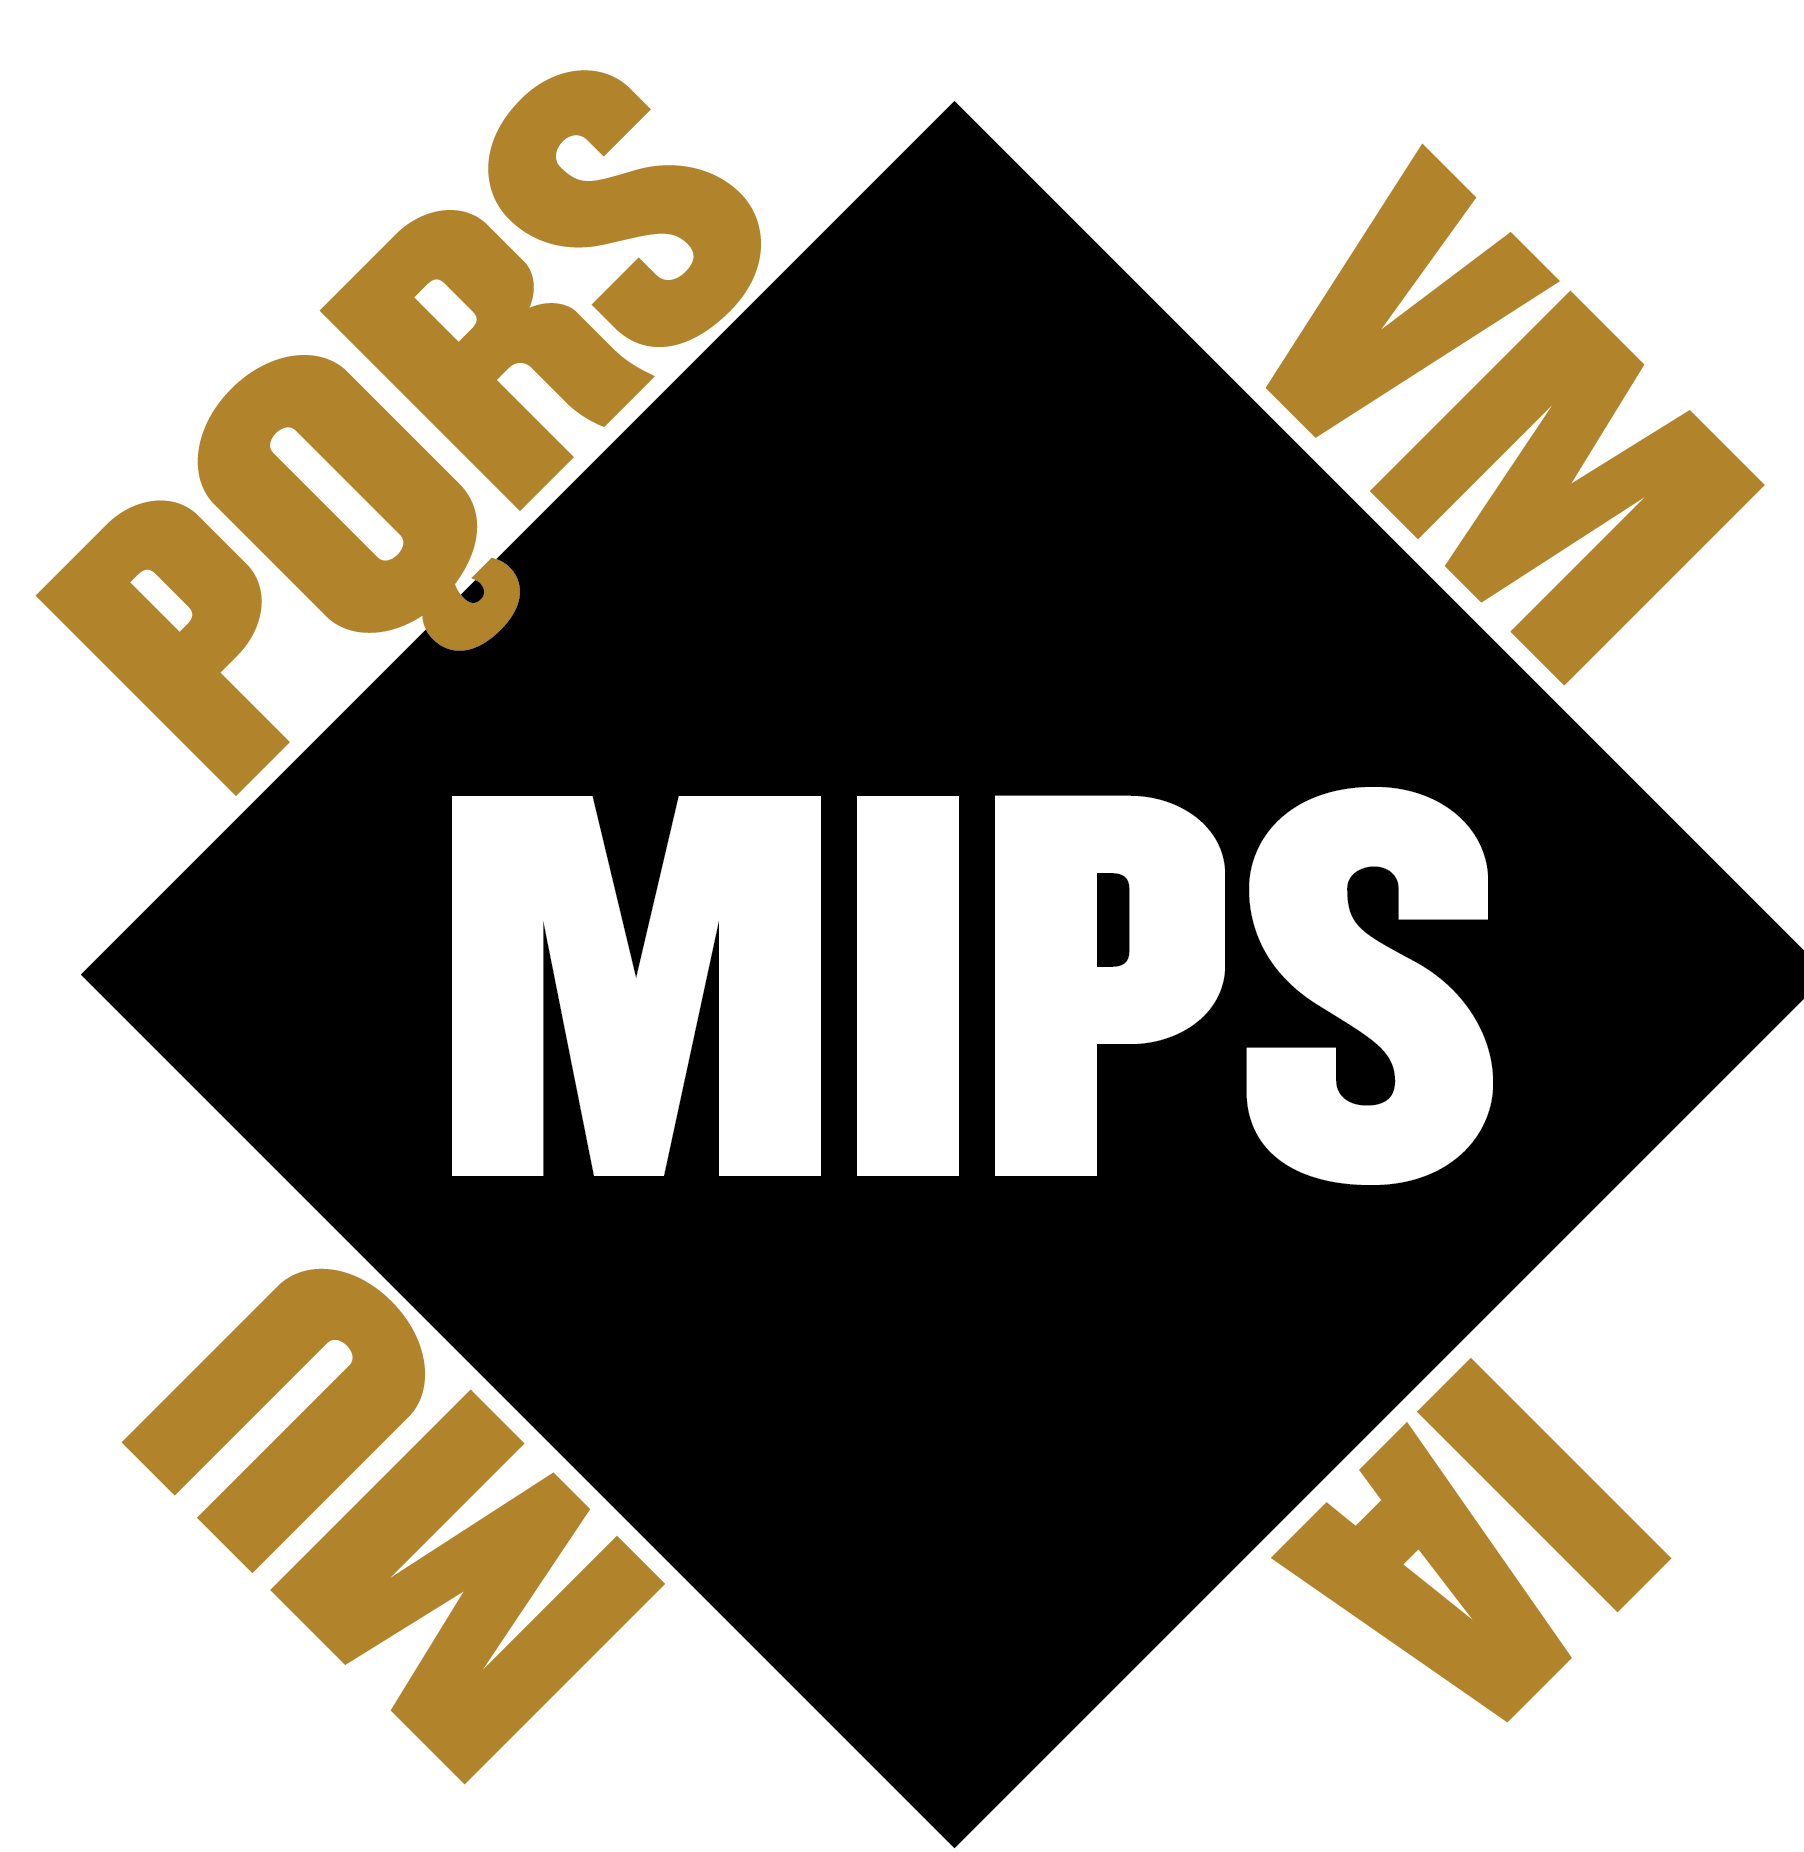 Mips clip. Quality payment program qpp